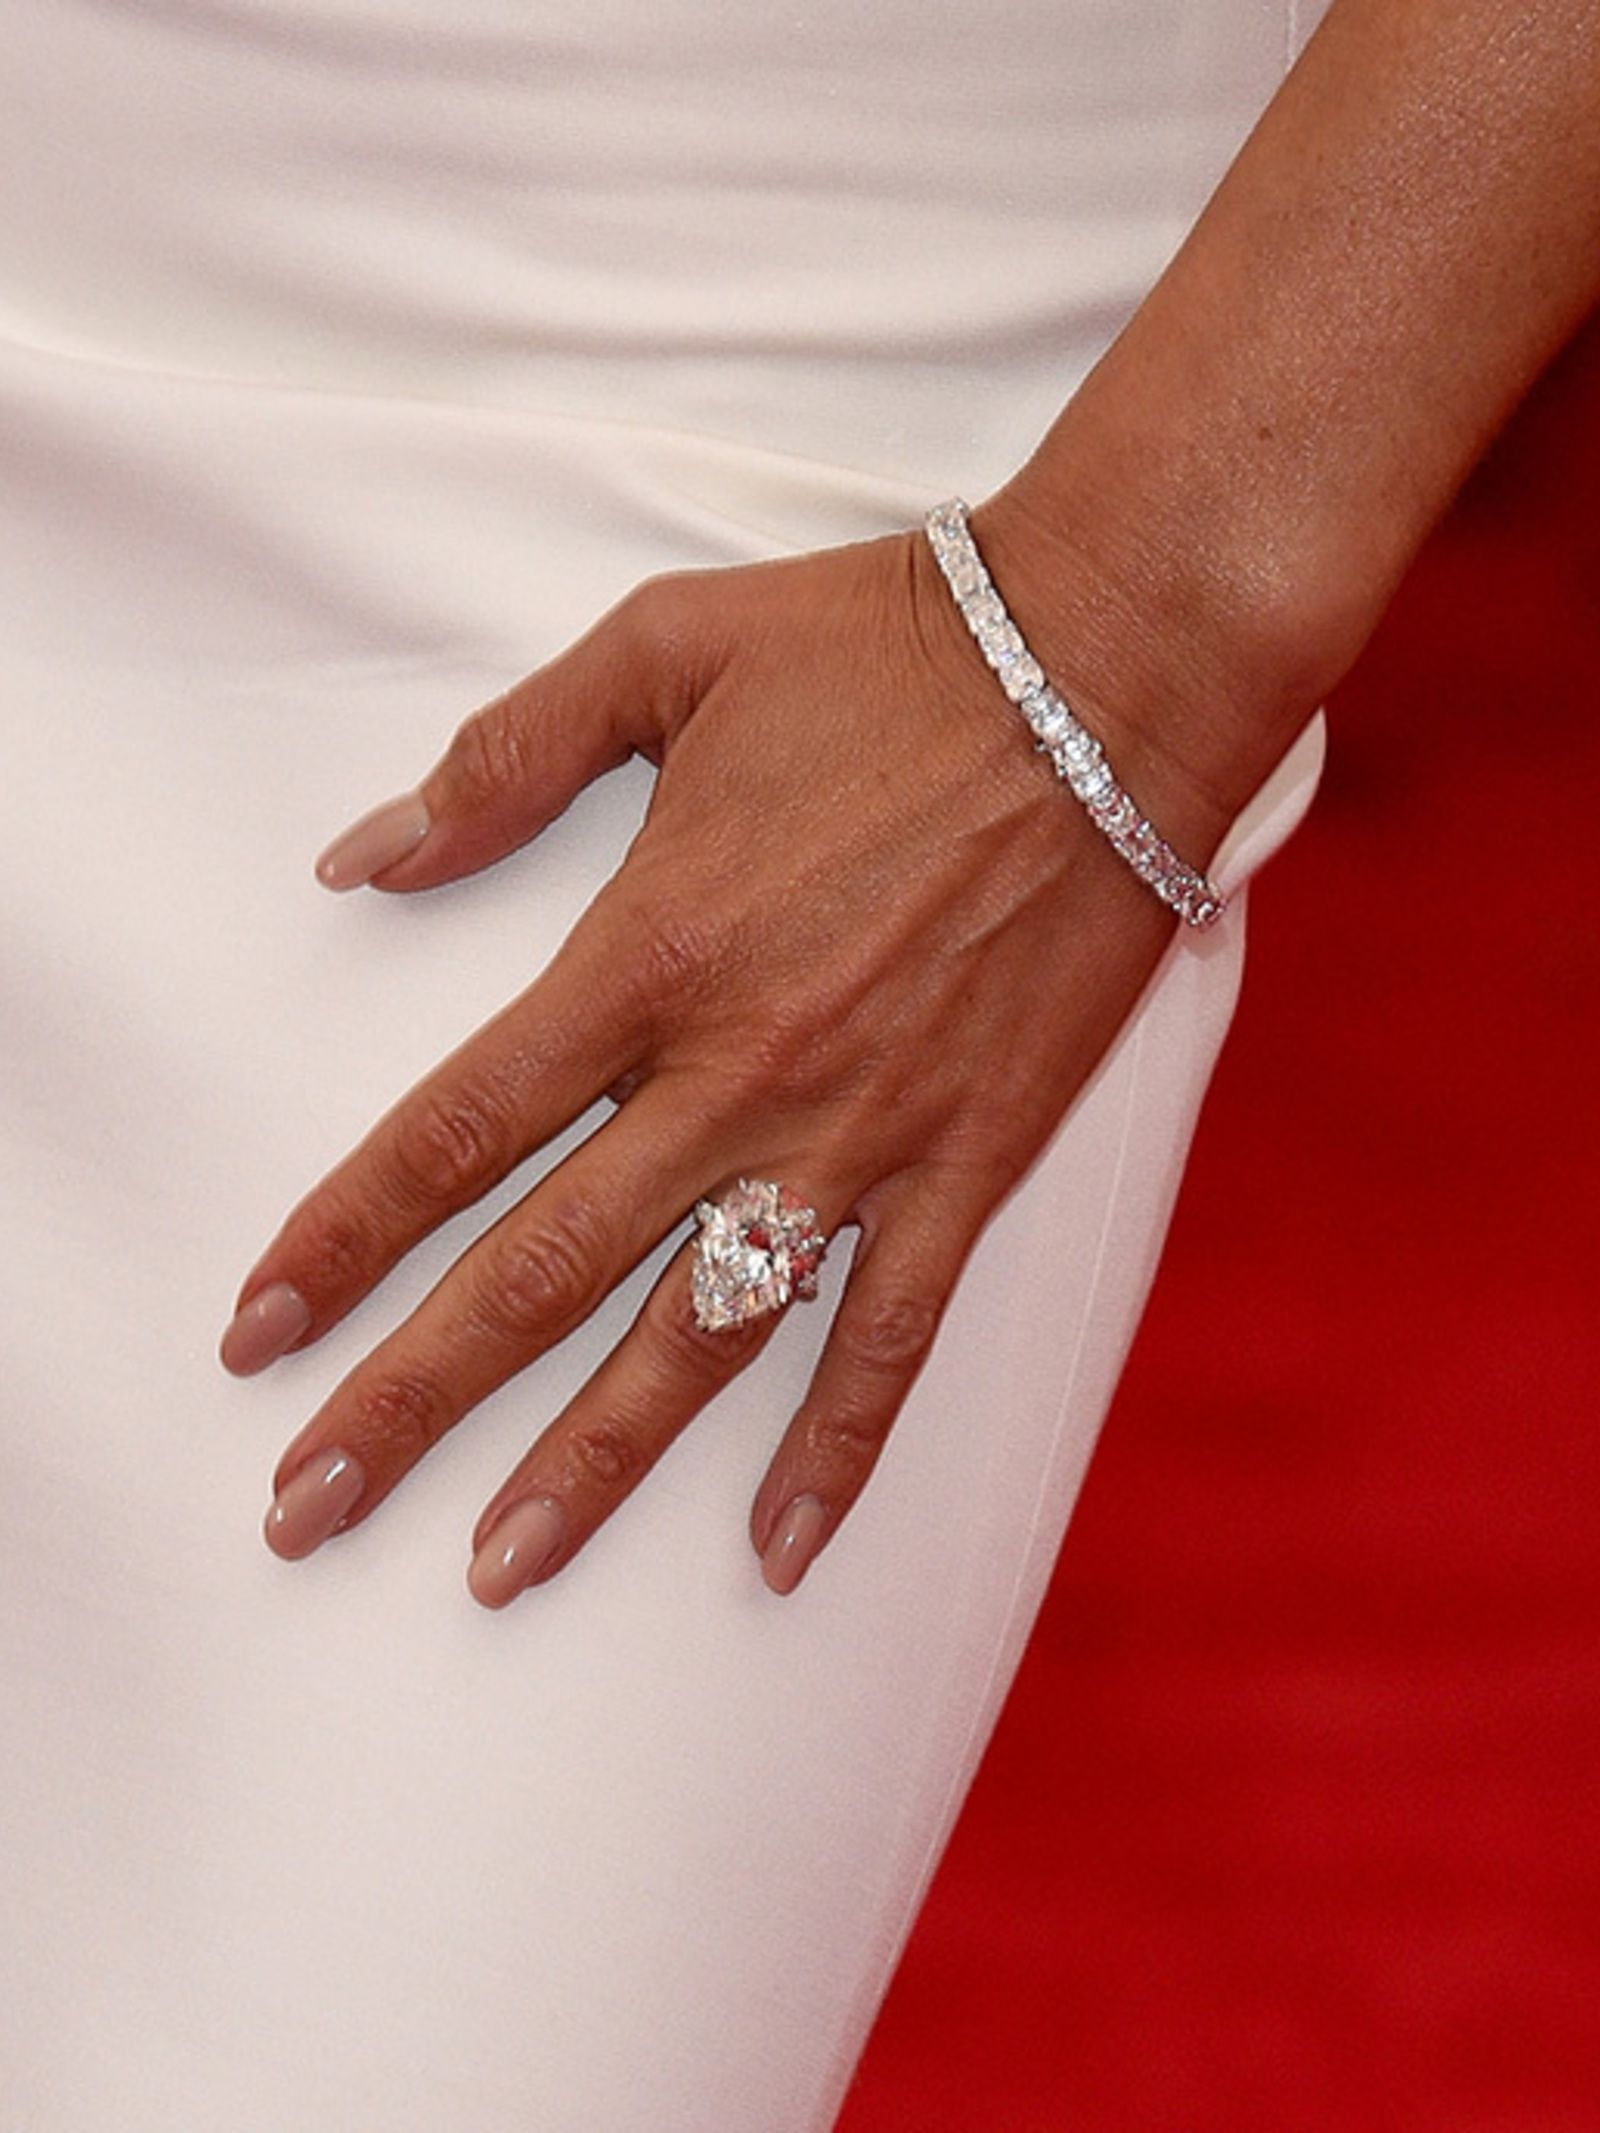 15 Biggest Celebrity Engagement Rings - Most Famous ...